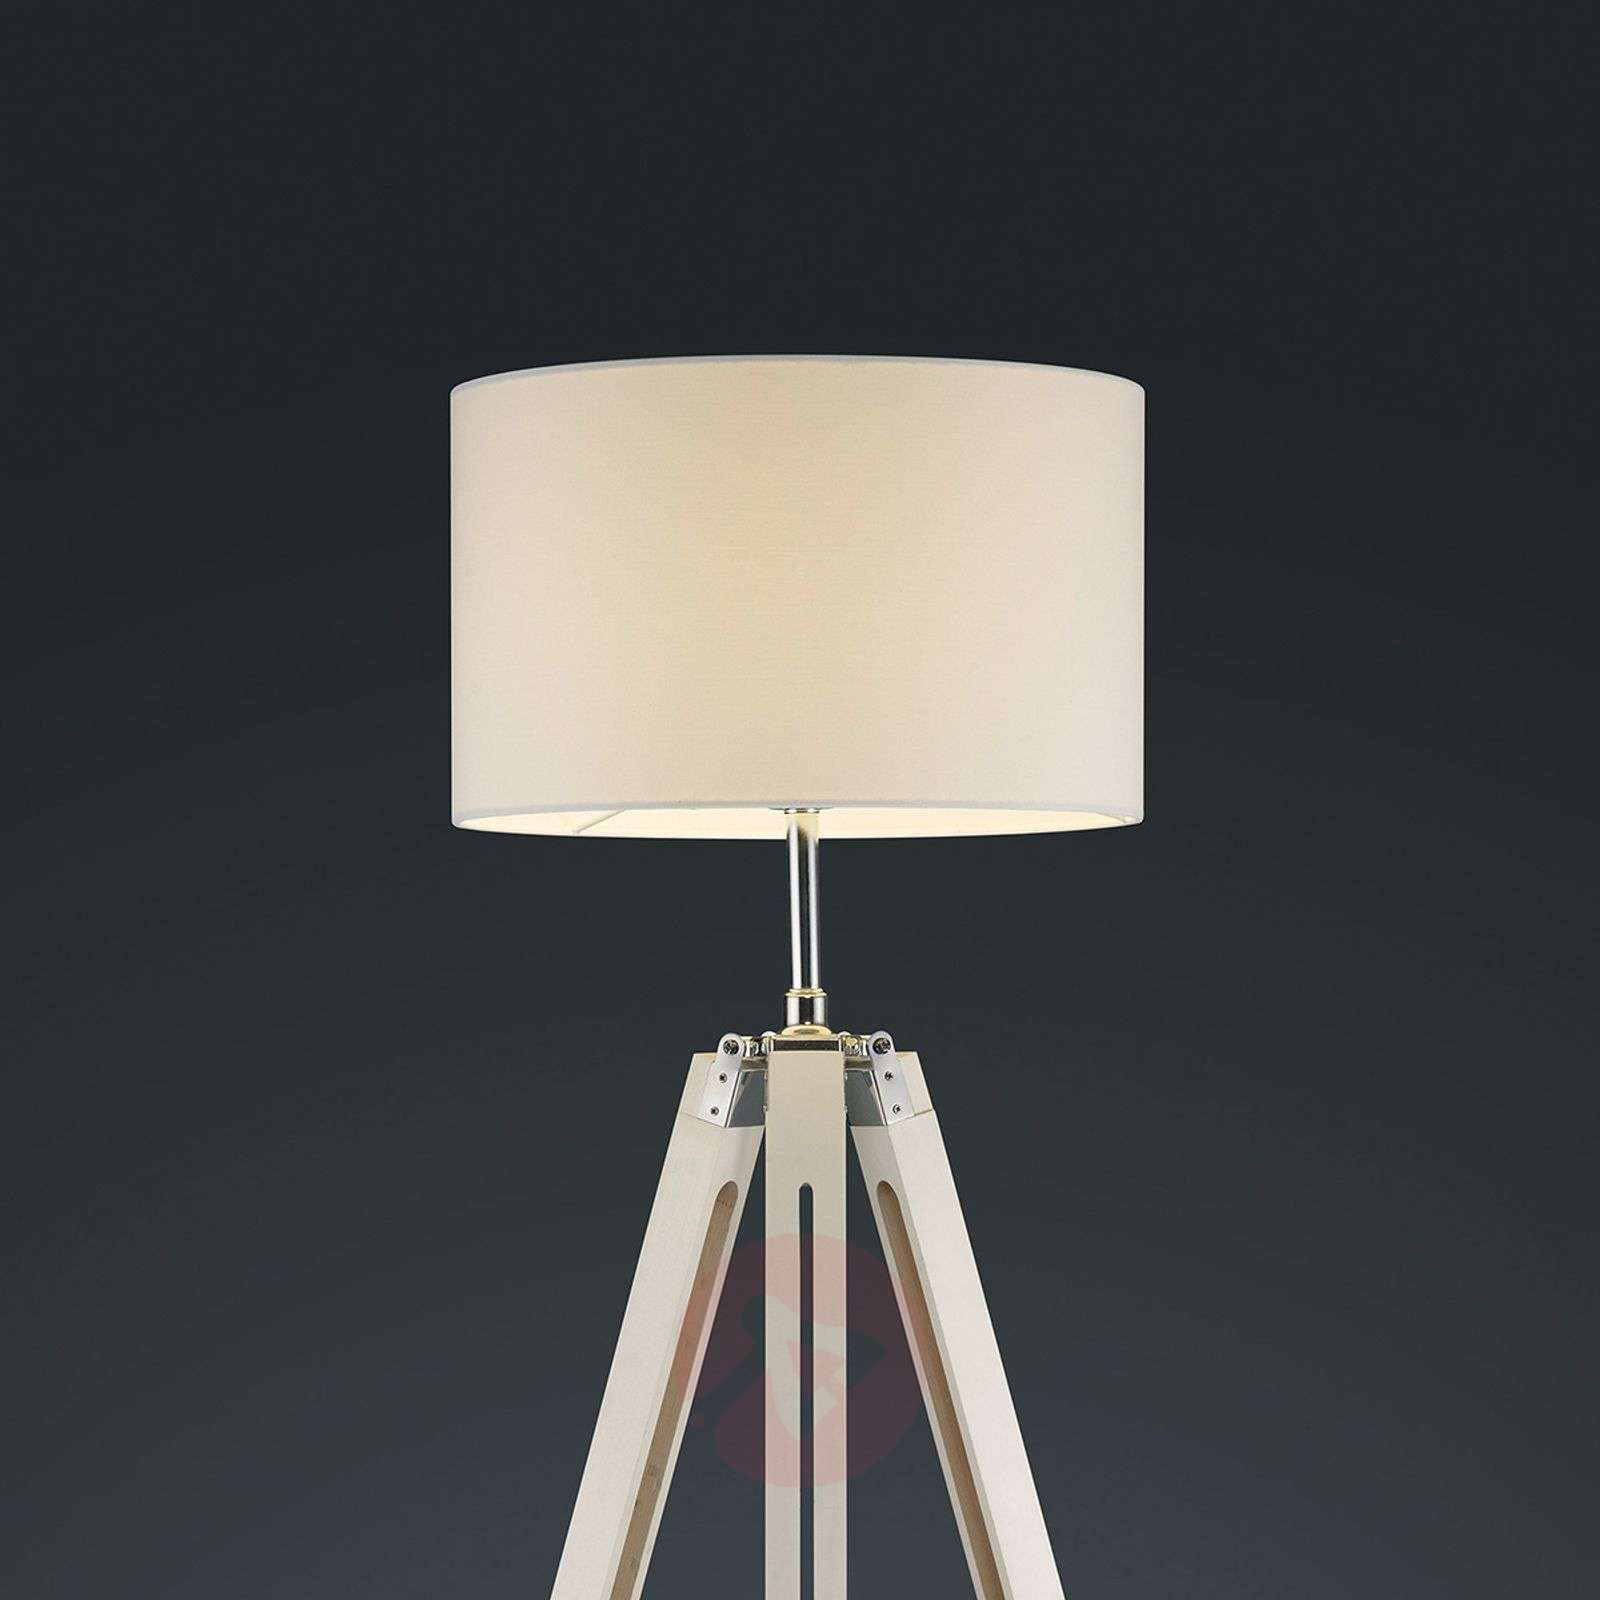 Gent three-legged floor lamp with white lampshade-9005103-01